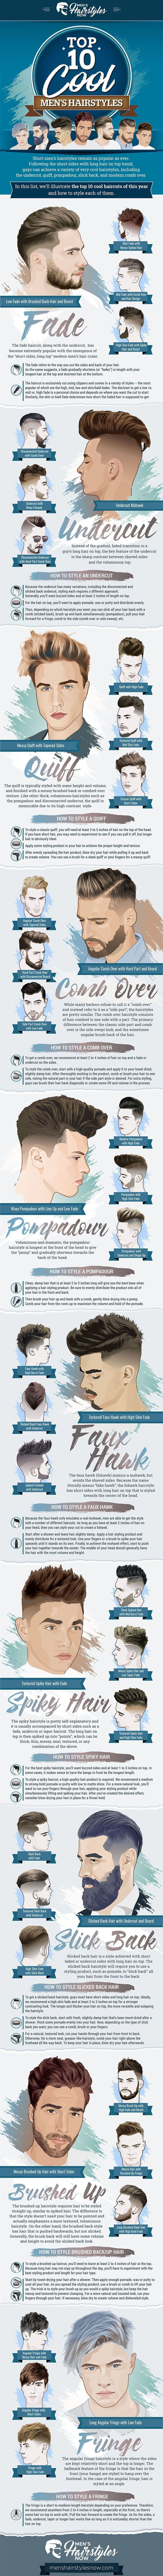 best free samples images on pinterest manus hairstyle menus